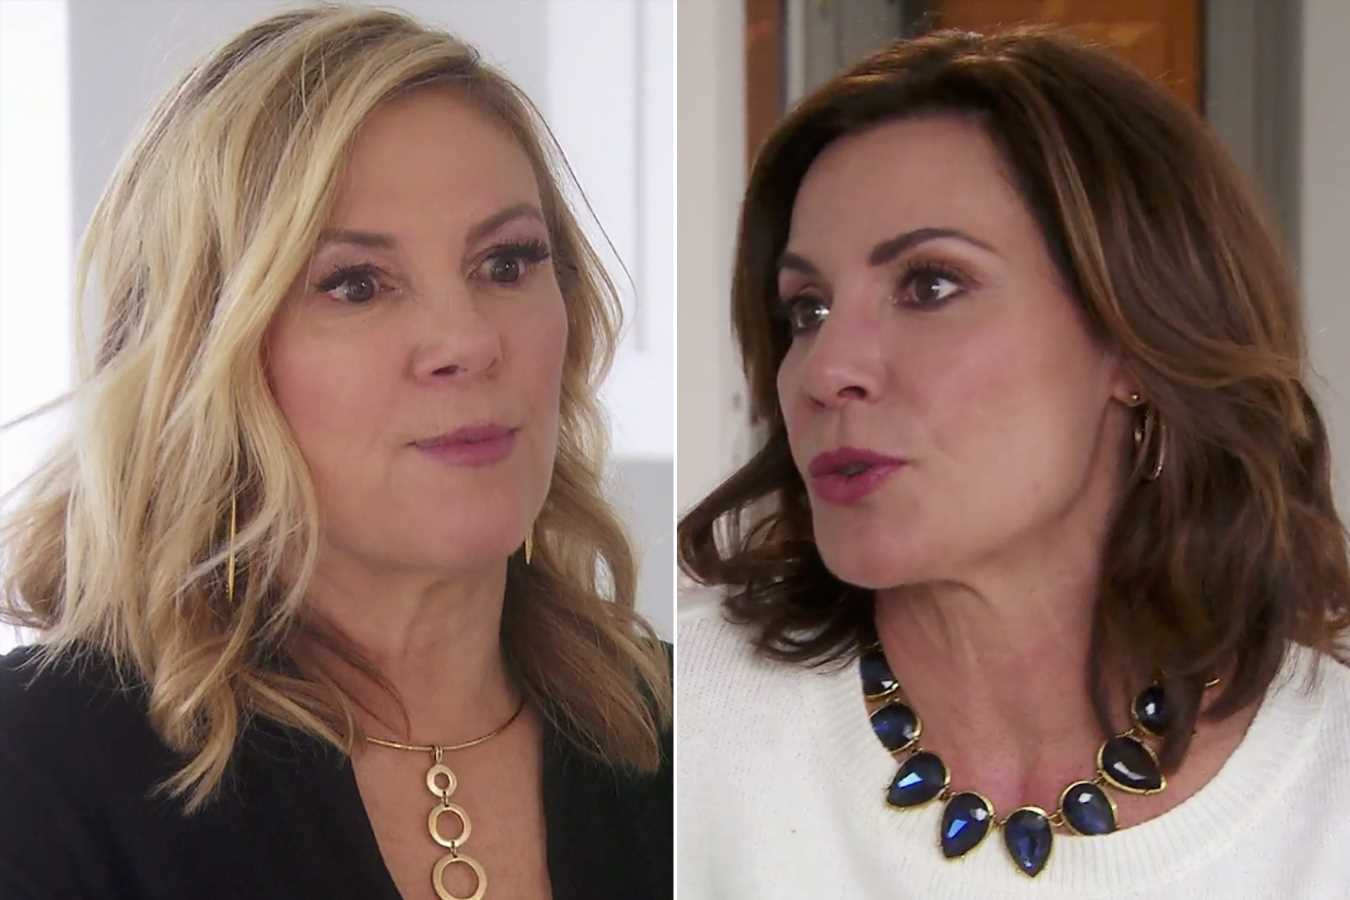 RHONY: Ramona Singer Awkwardly Tells Luann de Lesseps the Ladies Don't Want to Attend Cabaret